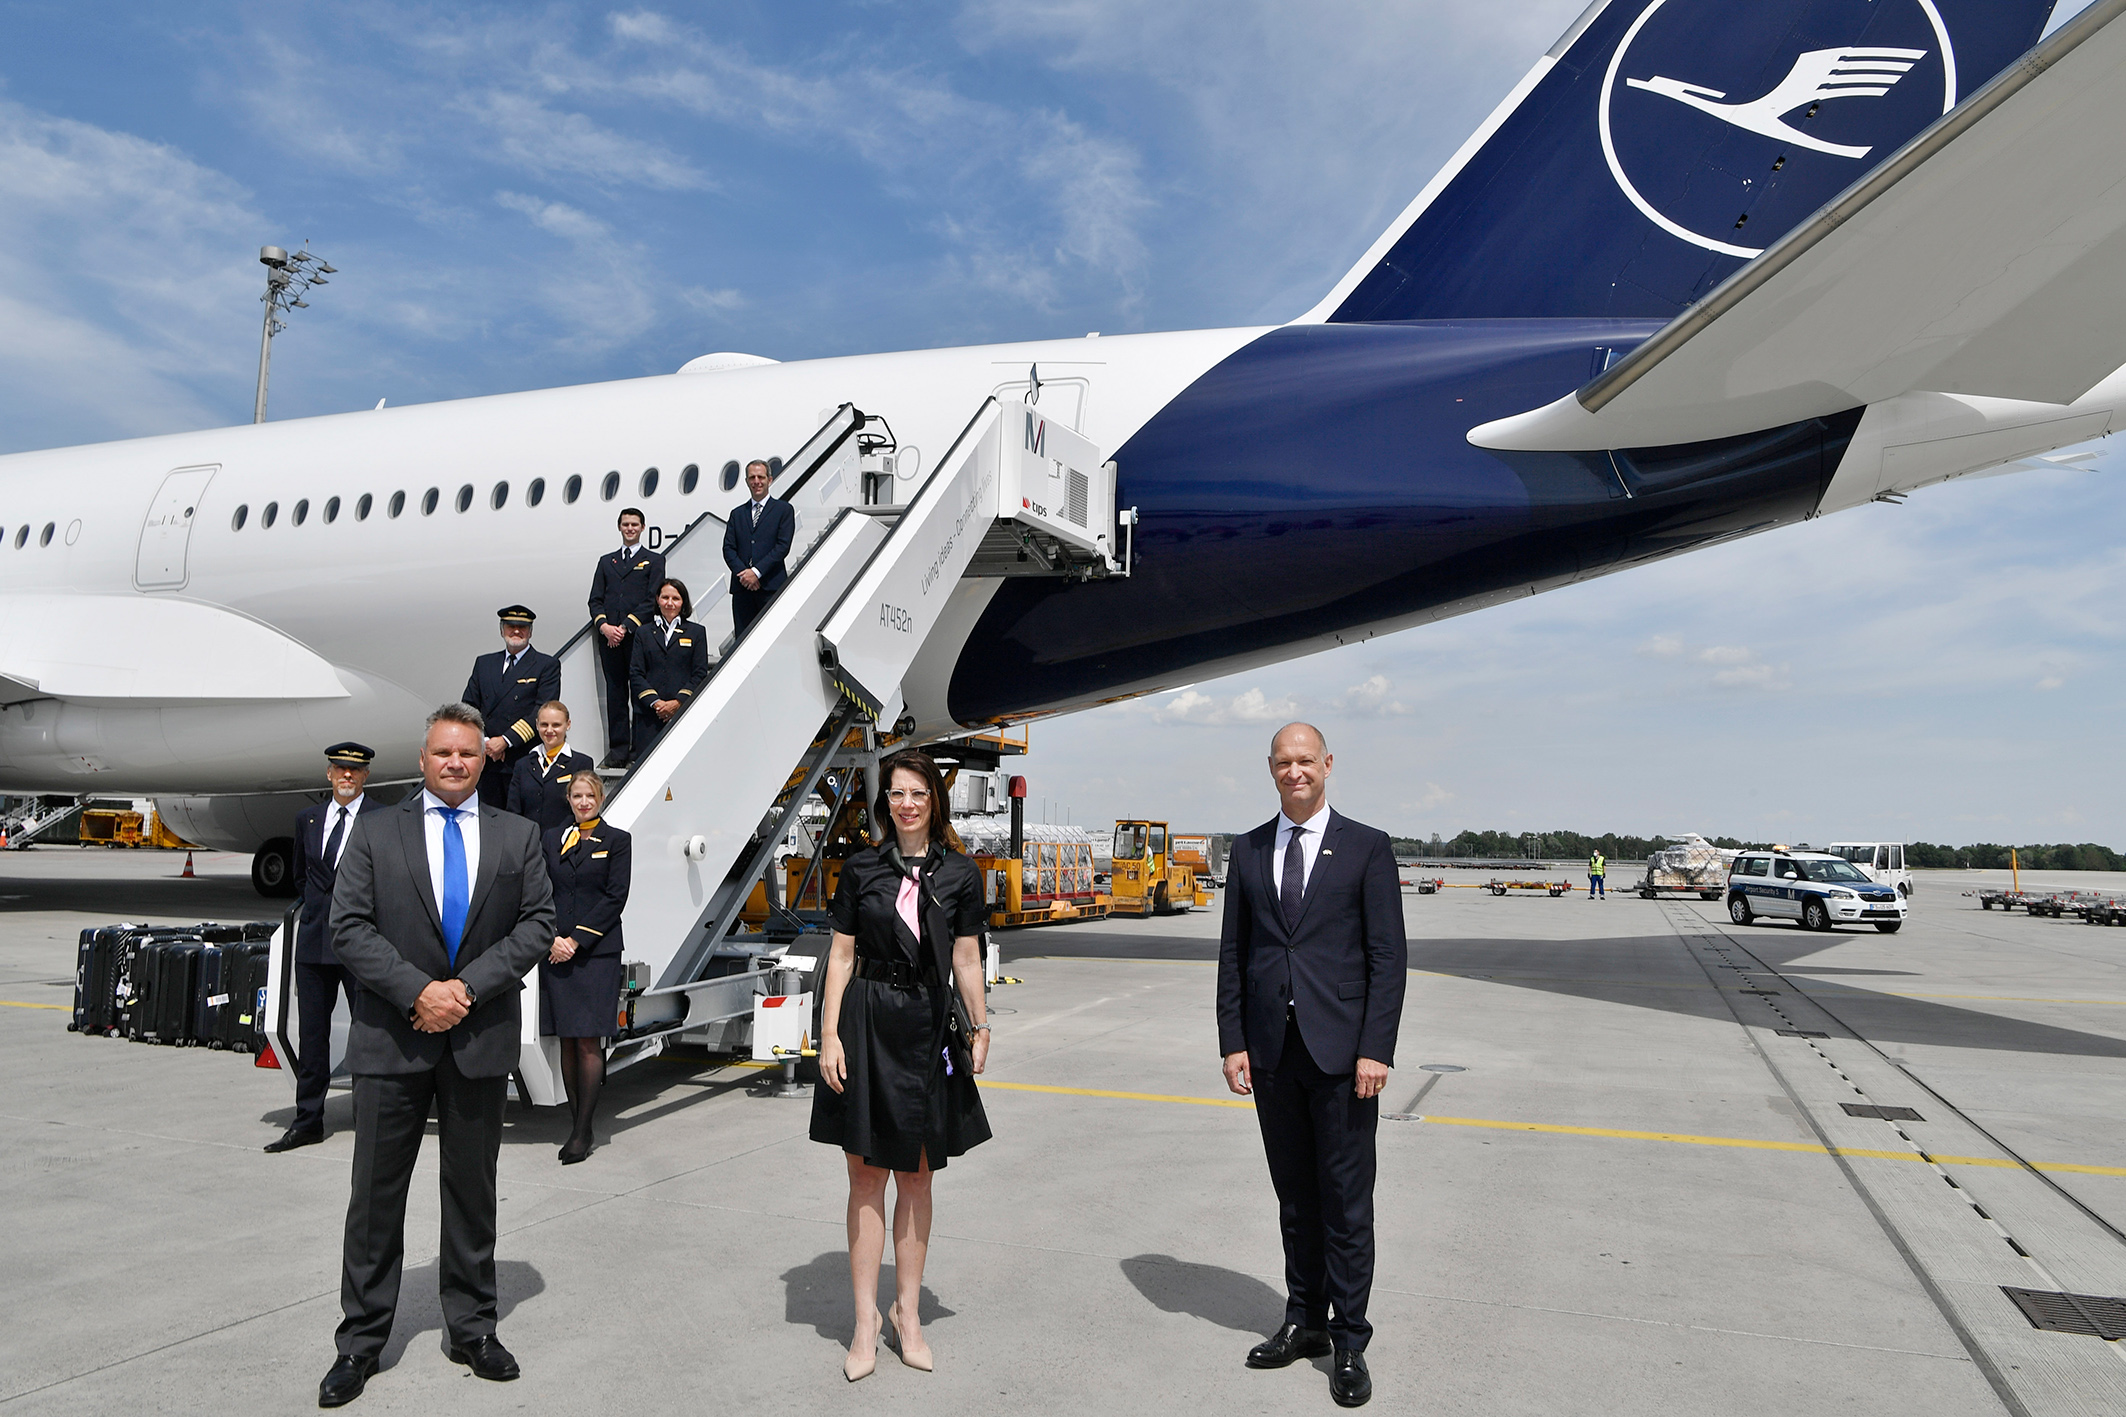 Lufthansa flies again from Munich to Los Angeles and Chicago